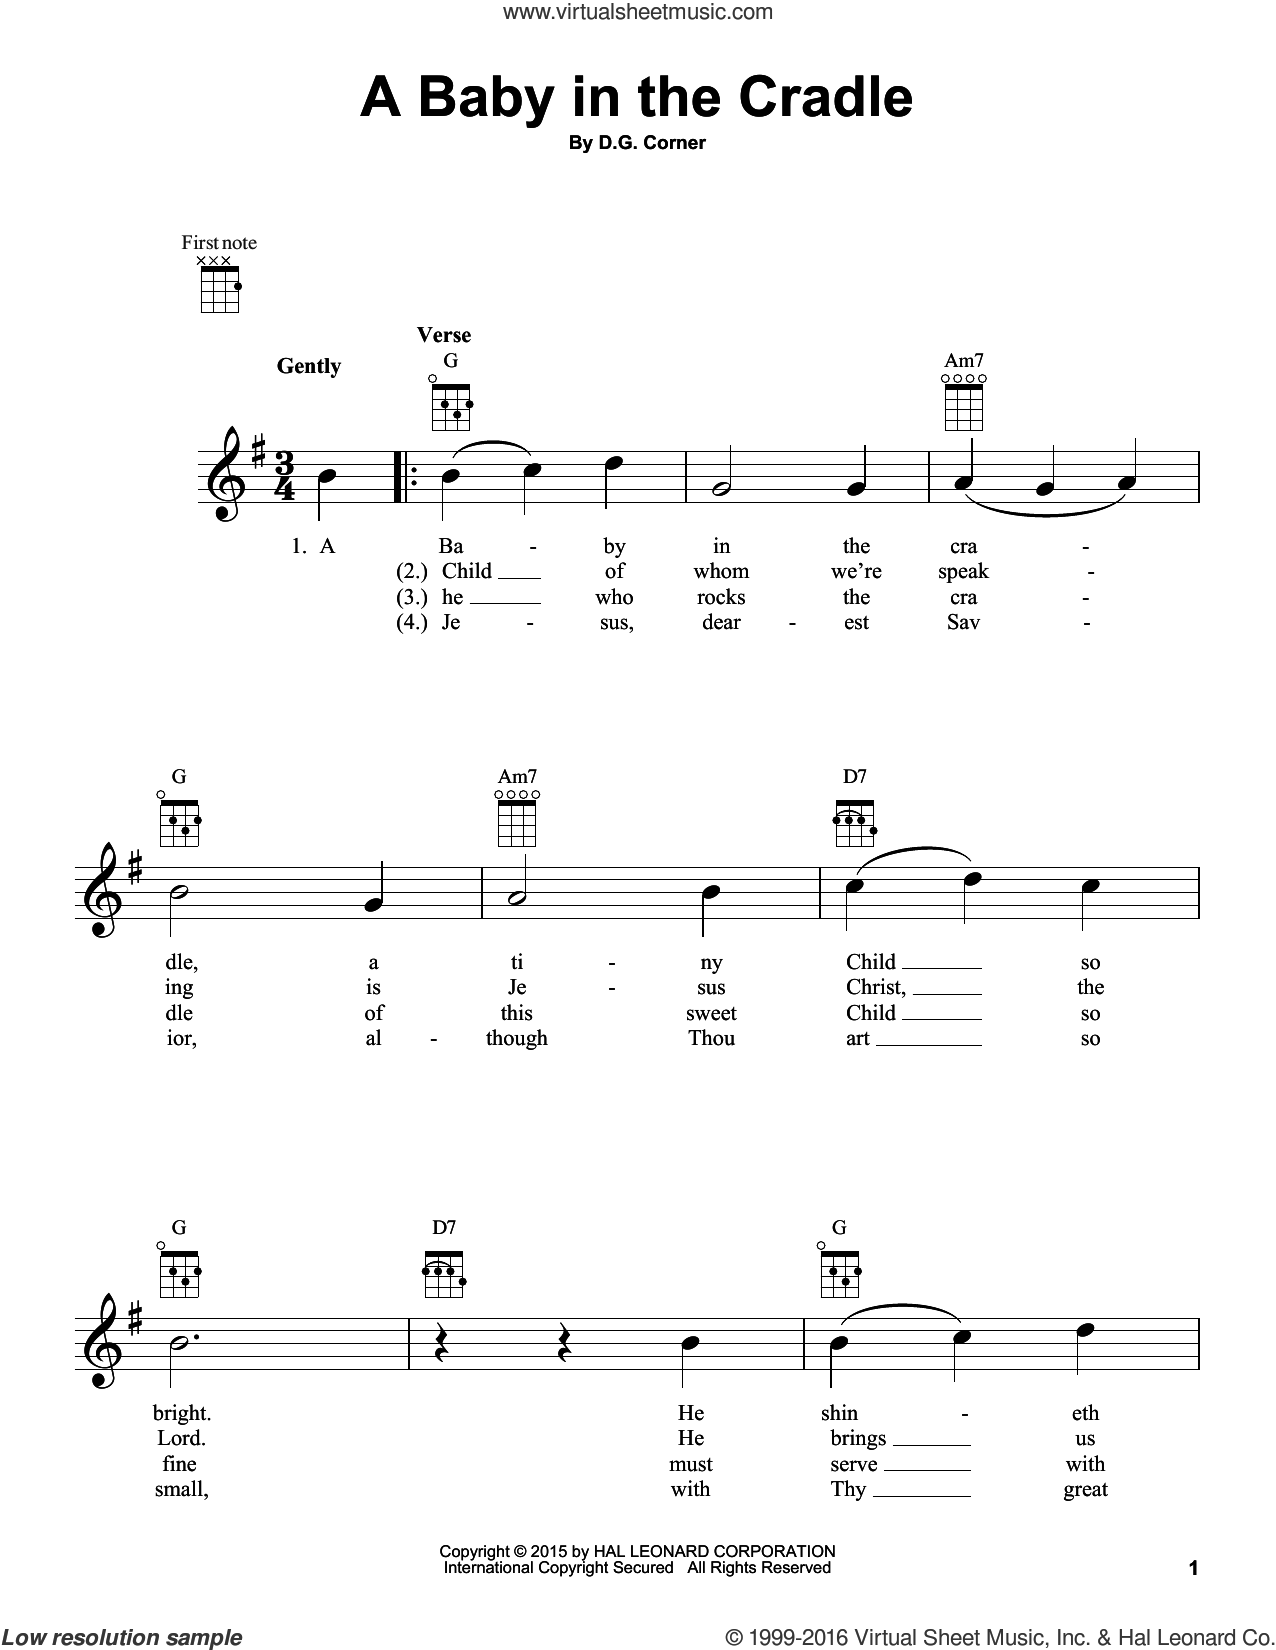 A Baby In The Cradle sheet music for ukulele by D.G. Corner, intermediate skill level